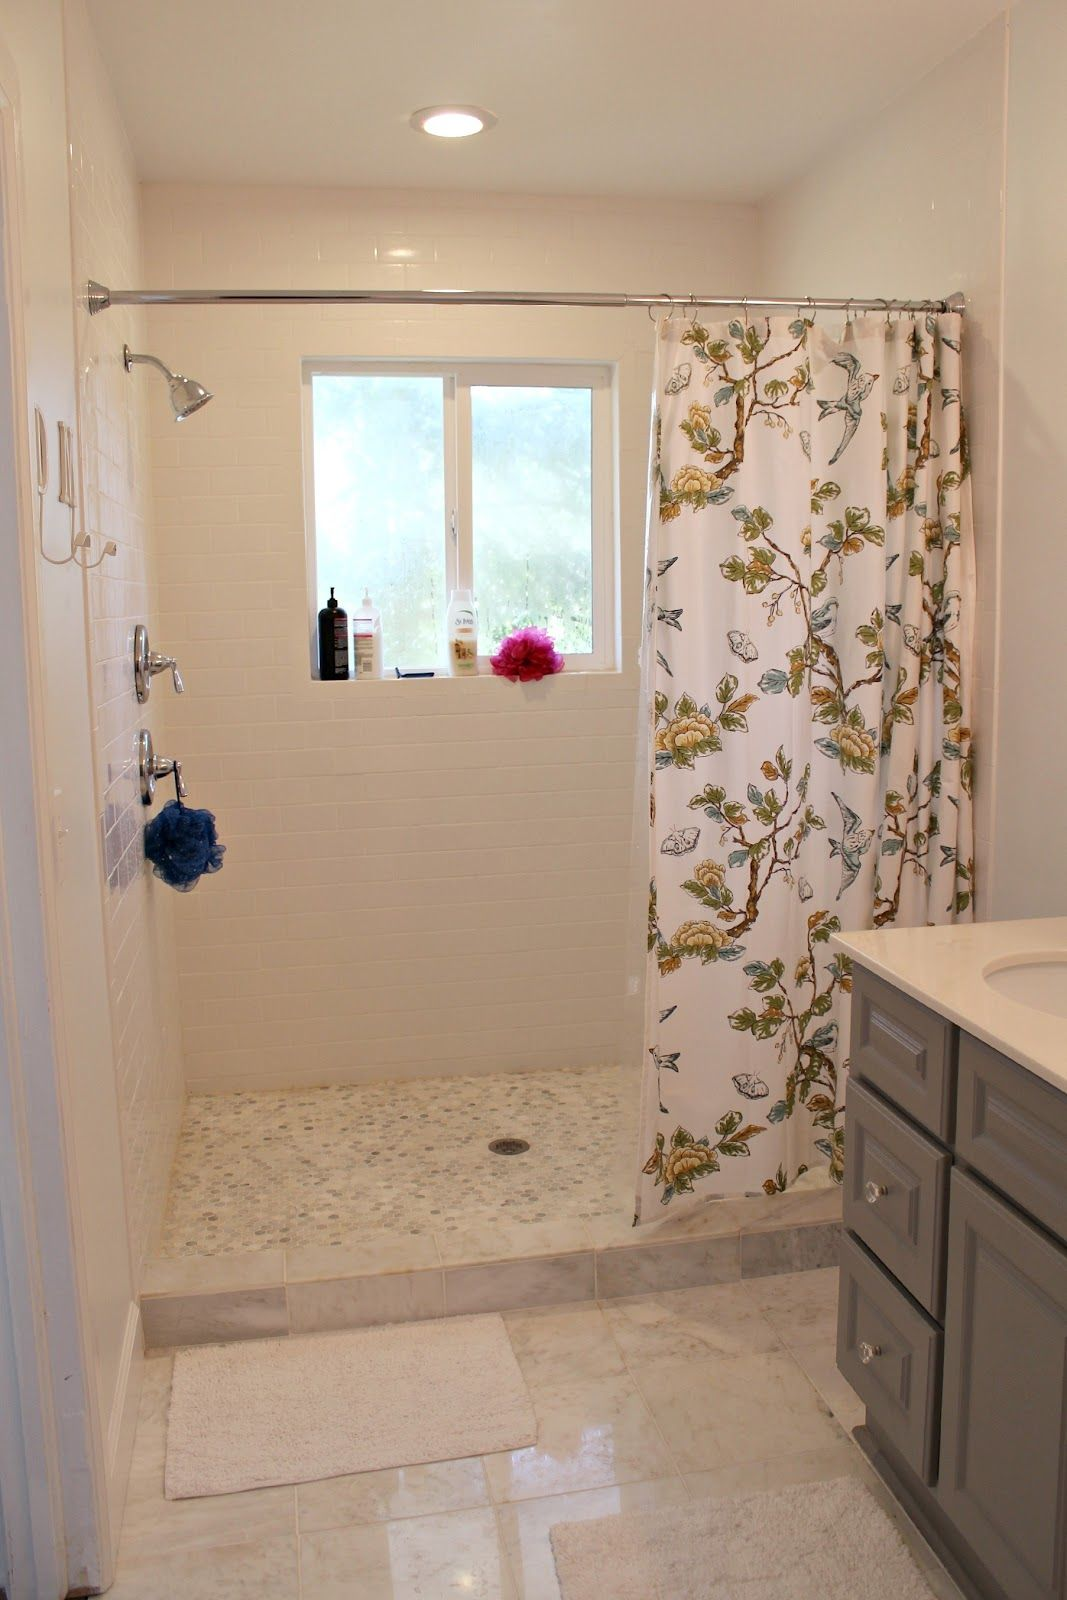 Glass Shower Curtains Walk In Standing Shower With Shower Curtain Instead Of Glass Door